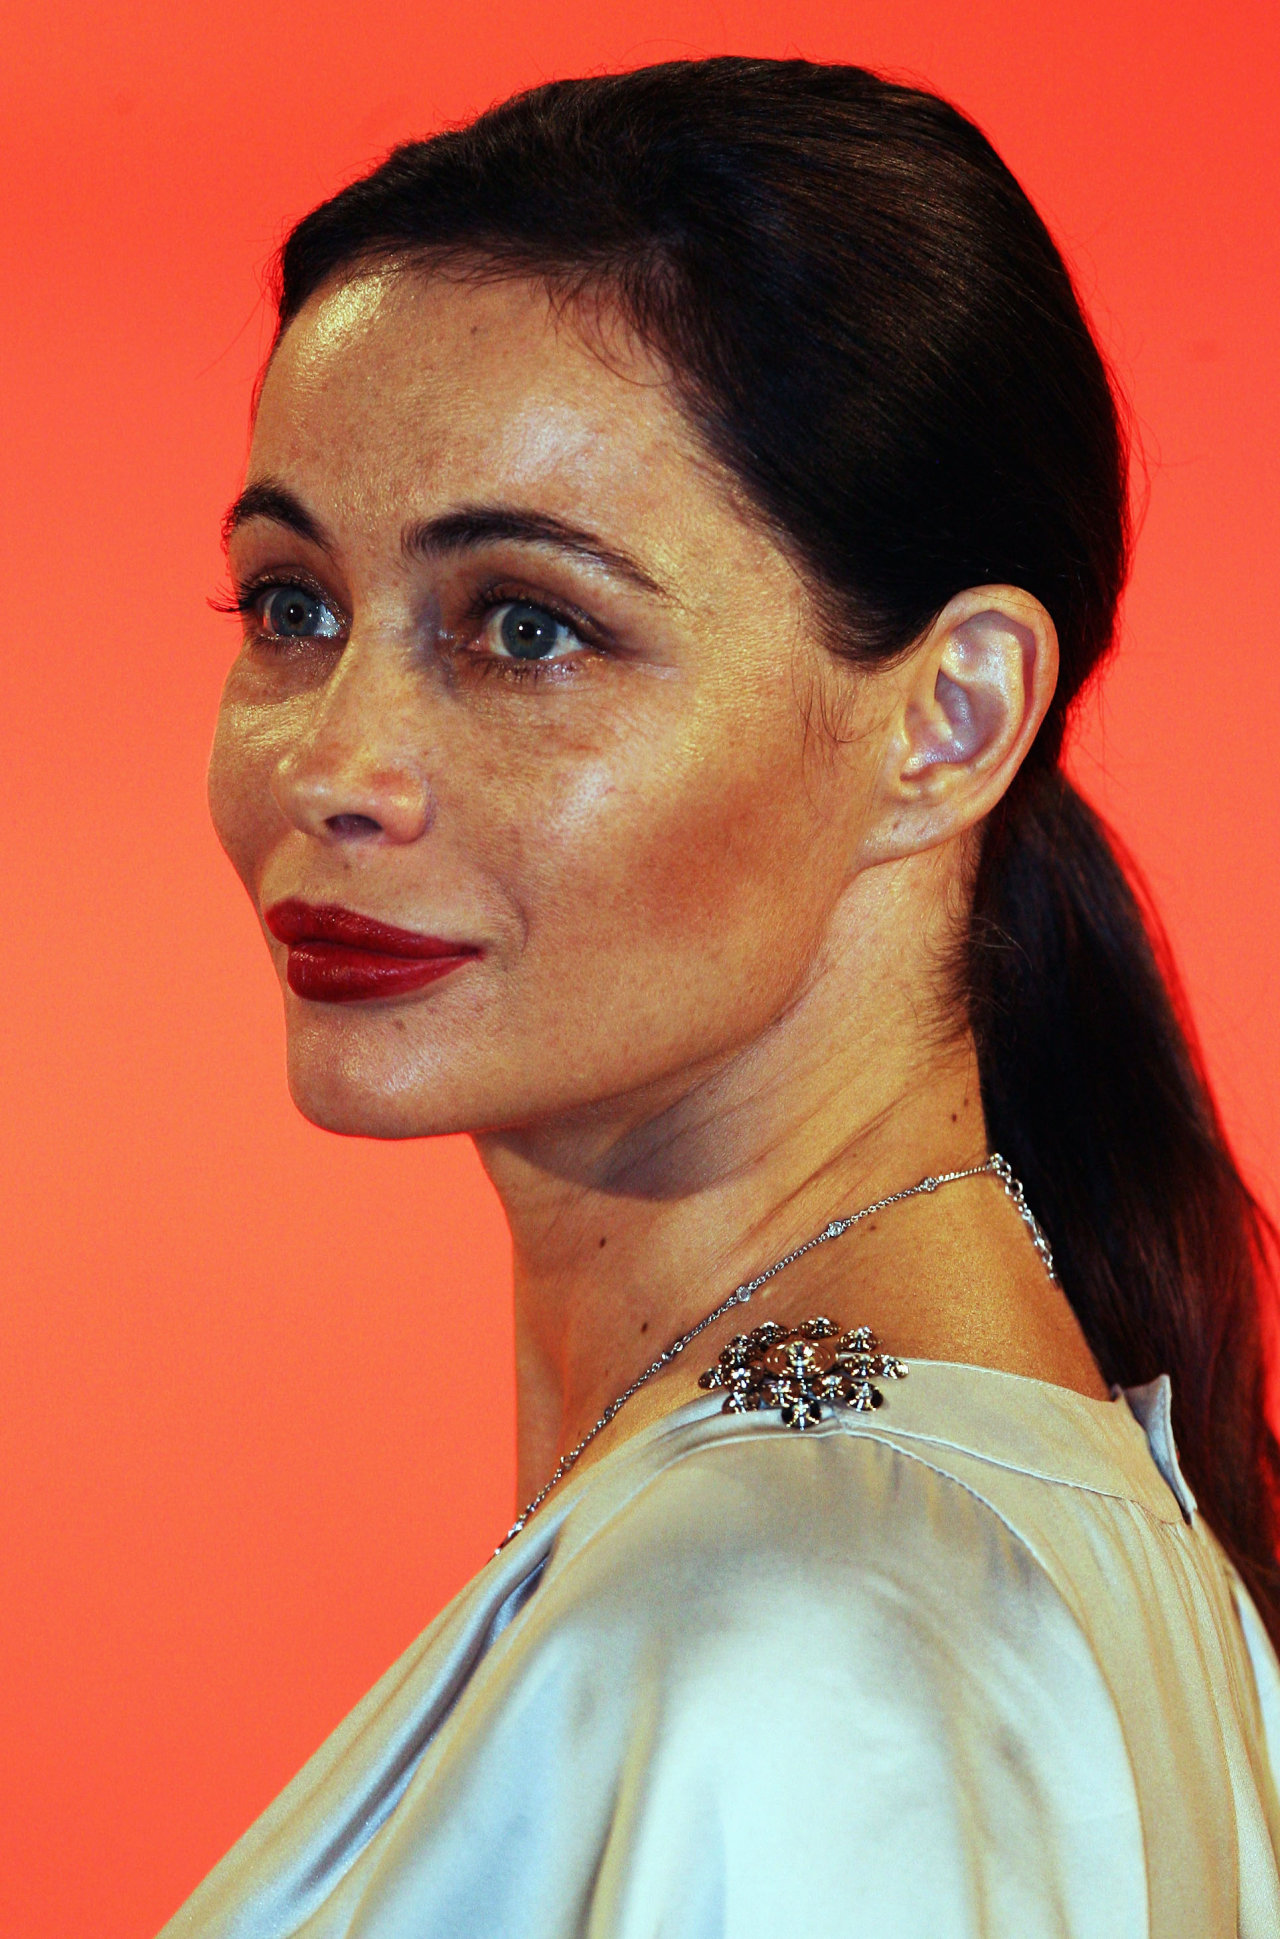 Emmanuelle Beart - Images Wallpaper